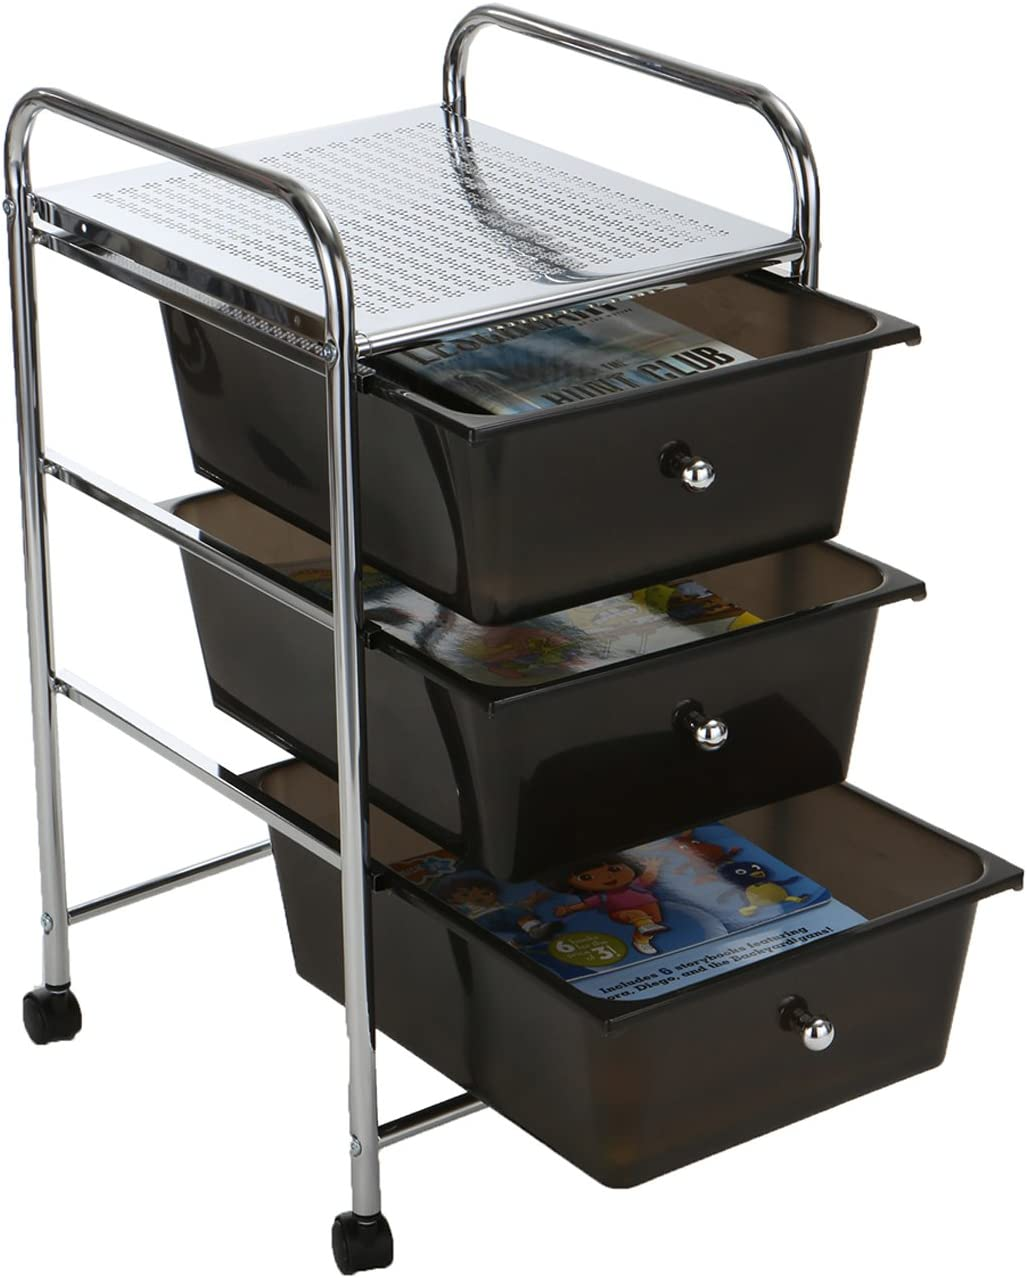 Mind Reader 3 Drawer Rolling Storage Cart and Organizer, Silver with Black Drawers: Kitchen & Dining